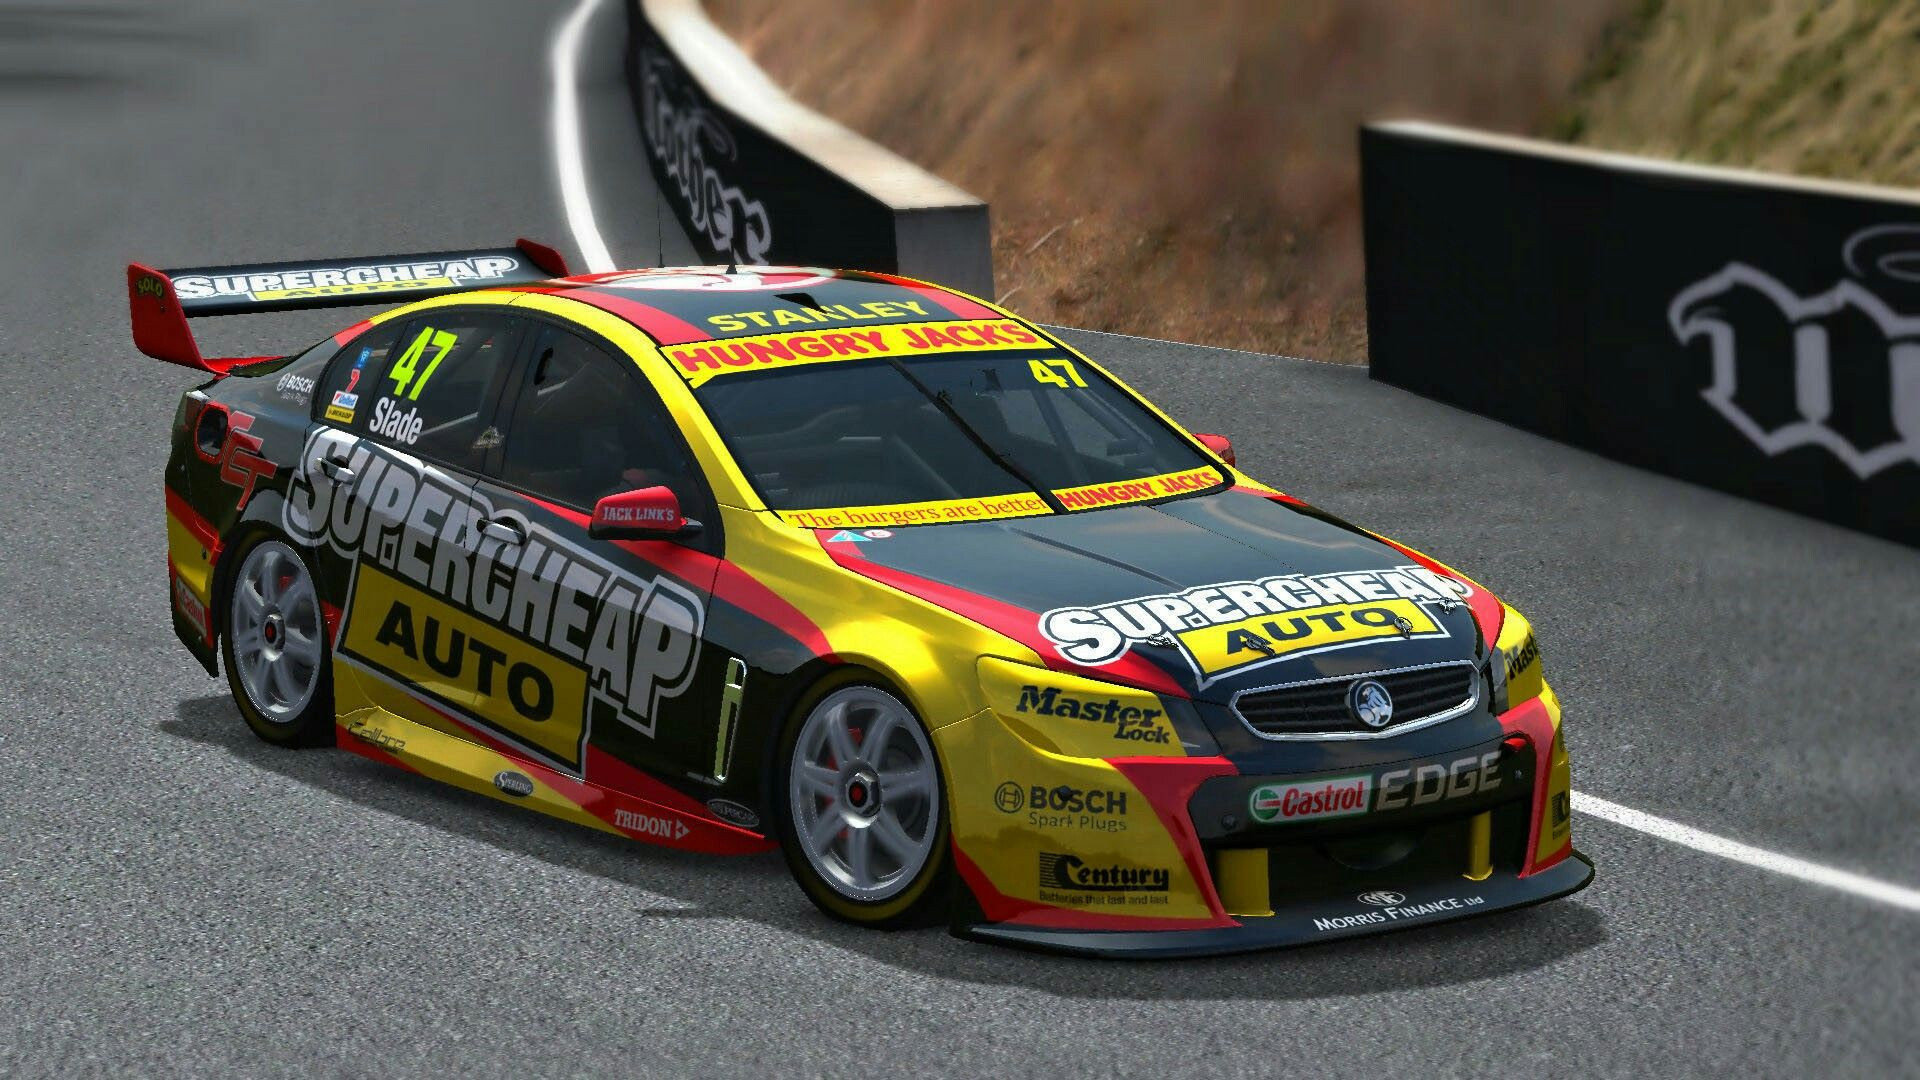 Great Looking Super V8 Cars Onwheels Tv 2014 Supercheap Auto Racing By Tero Dahlberg 47 Tim Coches